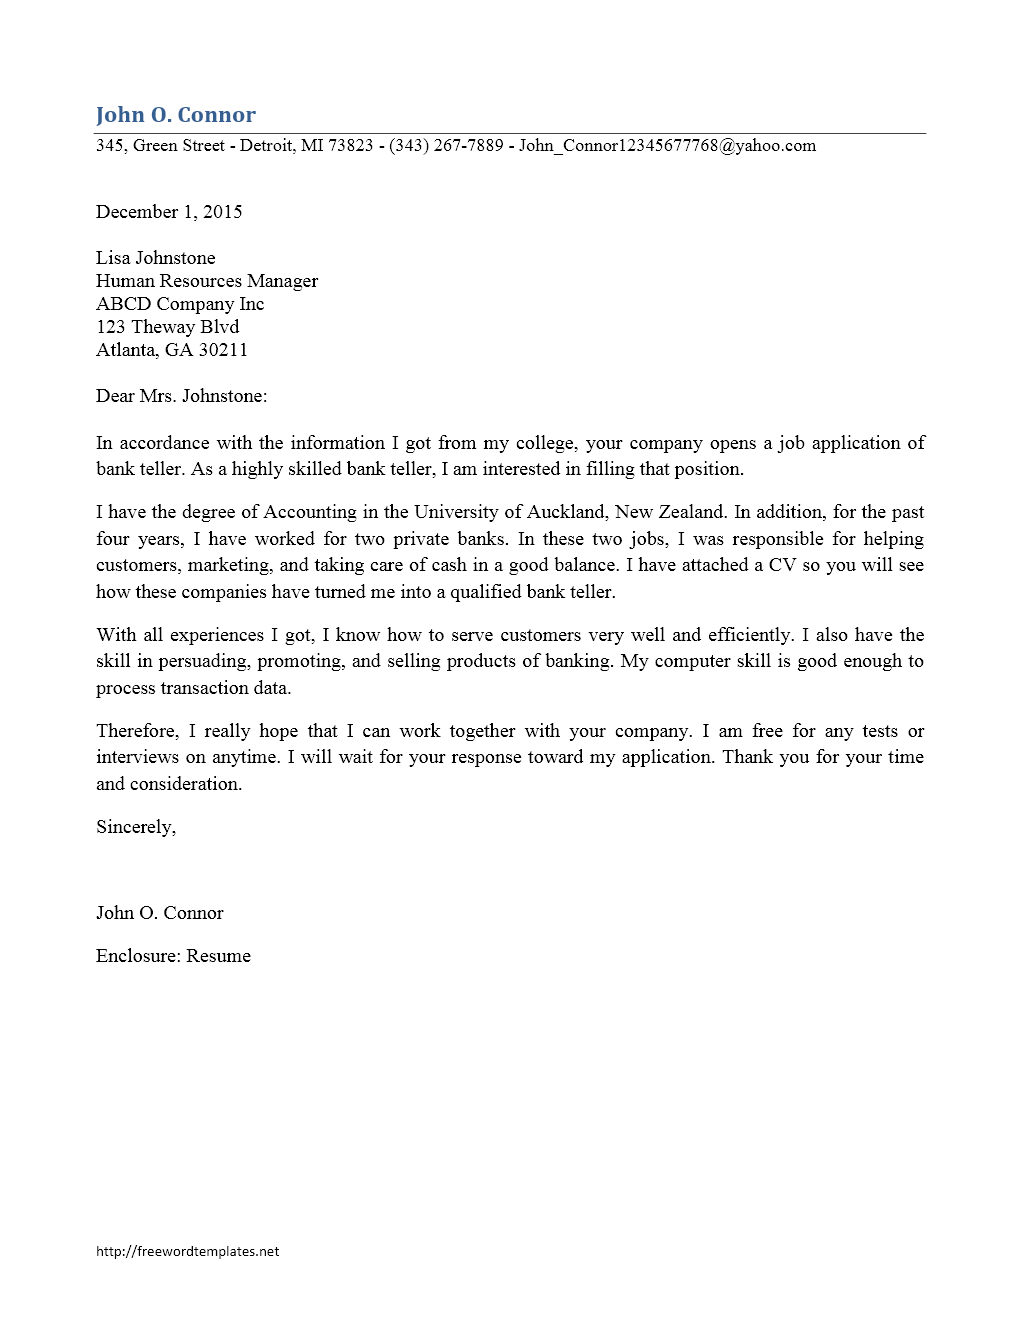 Cover Letter Salutation Unknown Recipient Cover Letter To Unknown